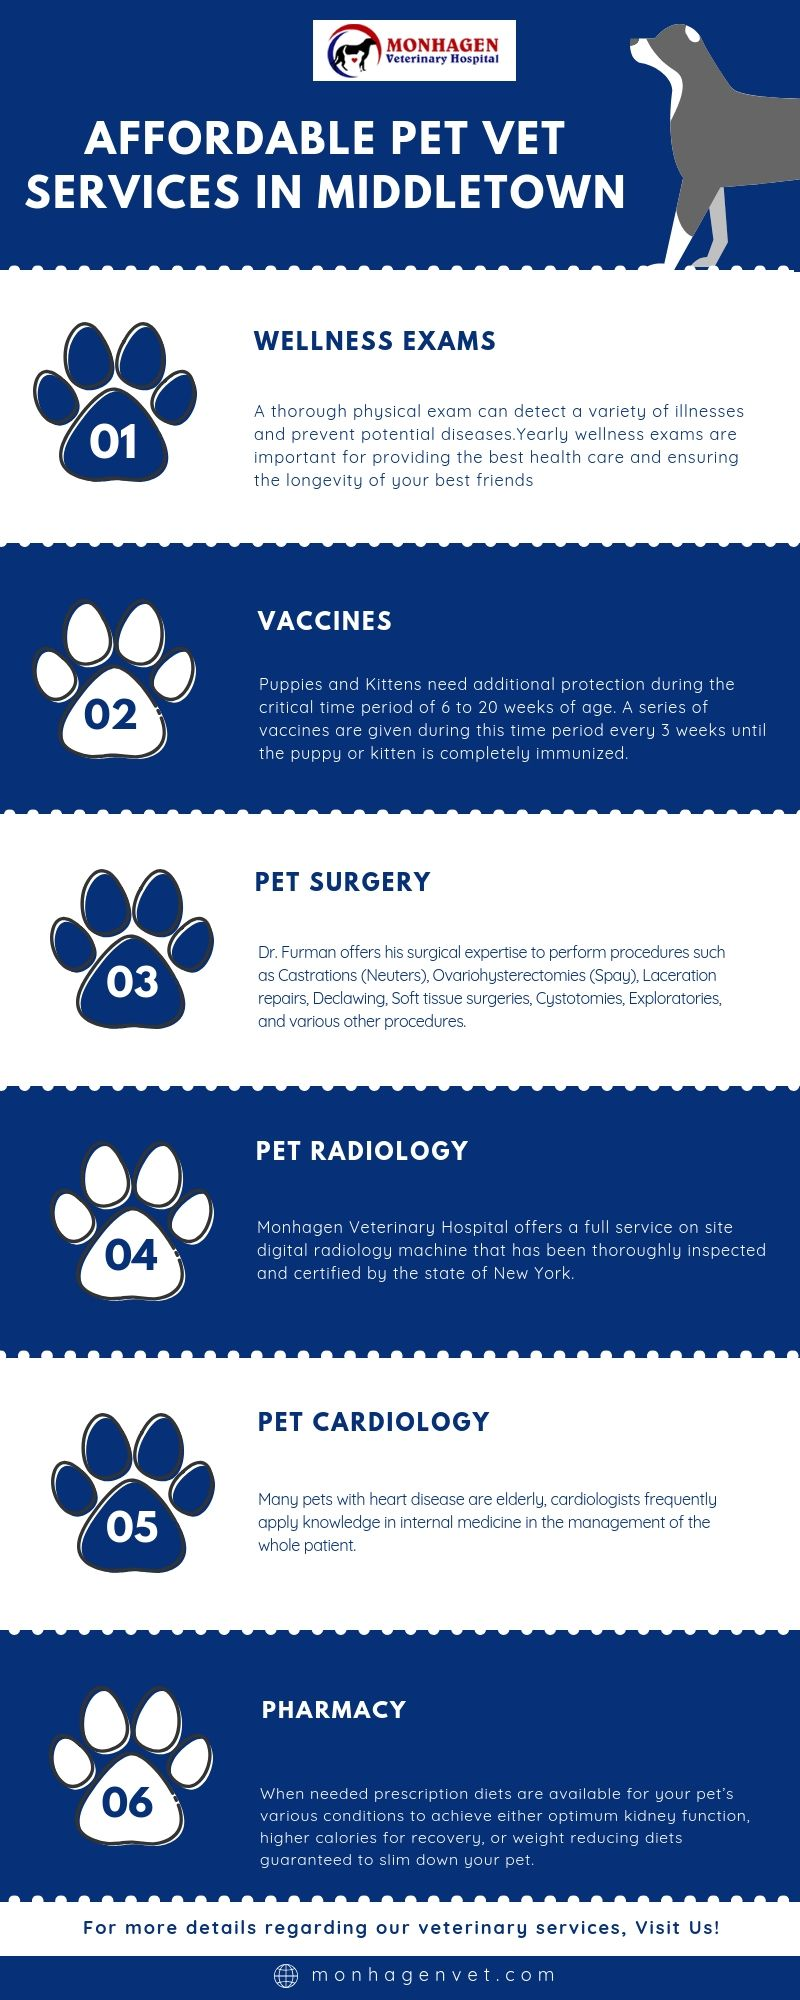 Monhagen Veterinary Hospital Is Dedicated To Providing Experienced And Compassionate Pet Vet Services In Middletown For M Pet Vet Veterinary Hospital